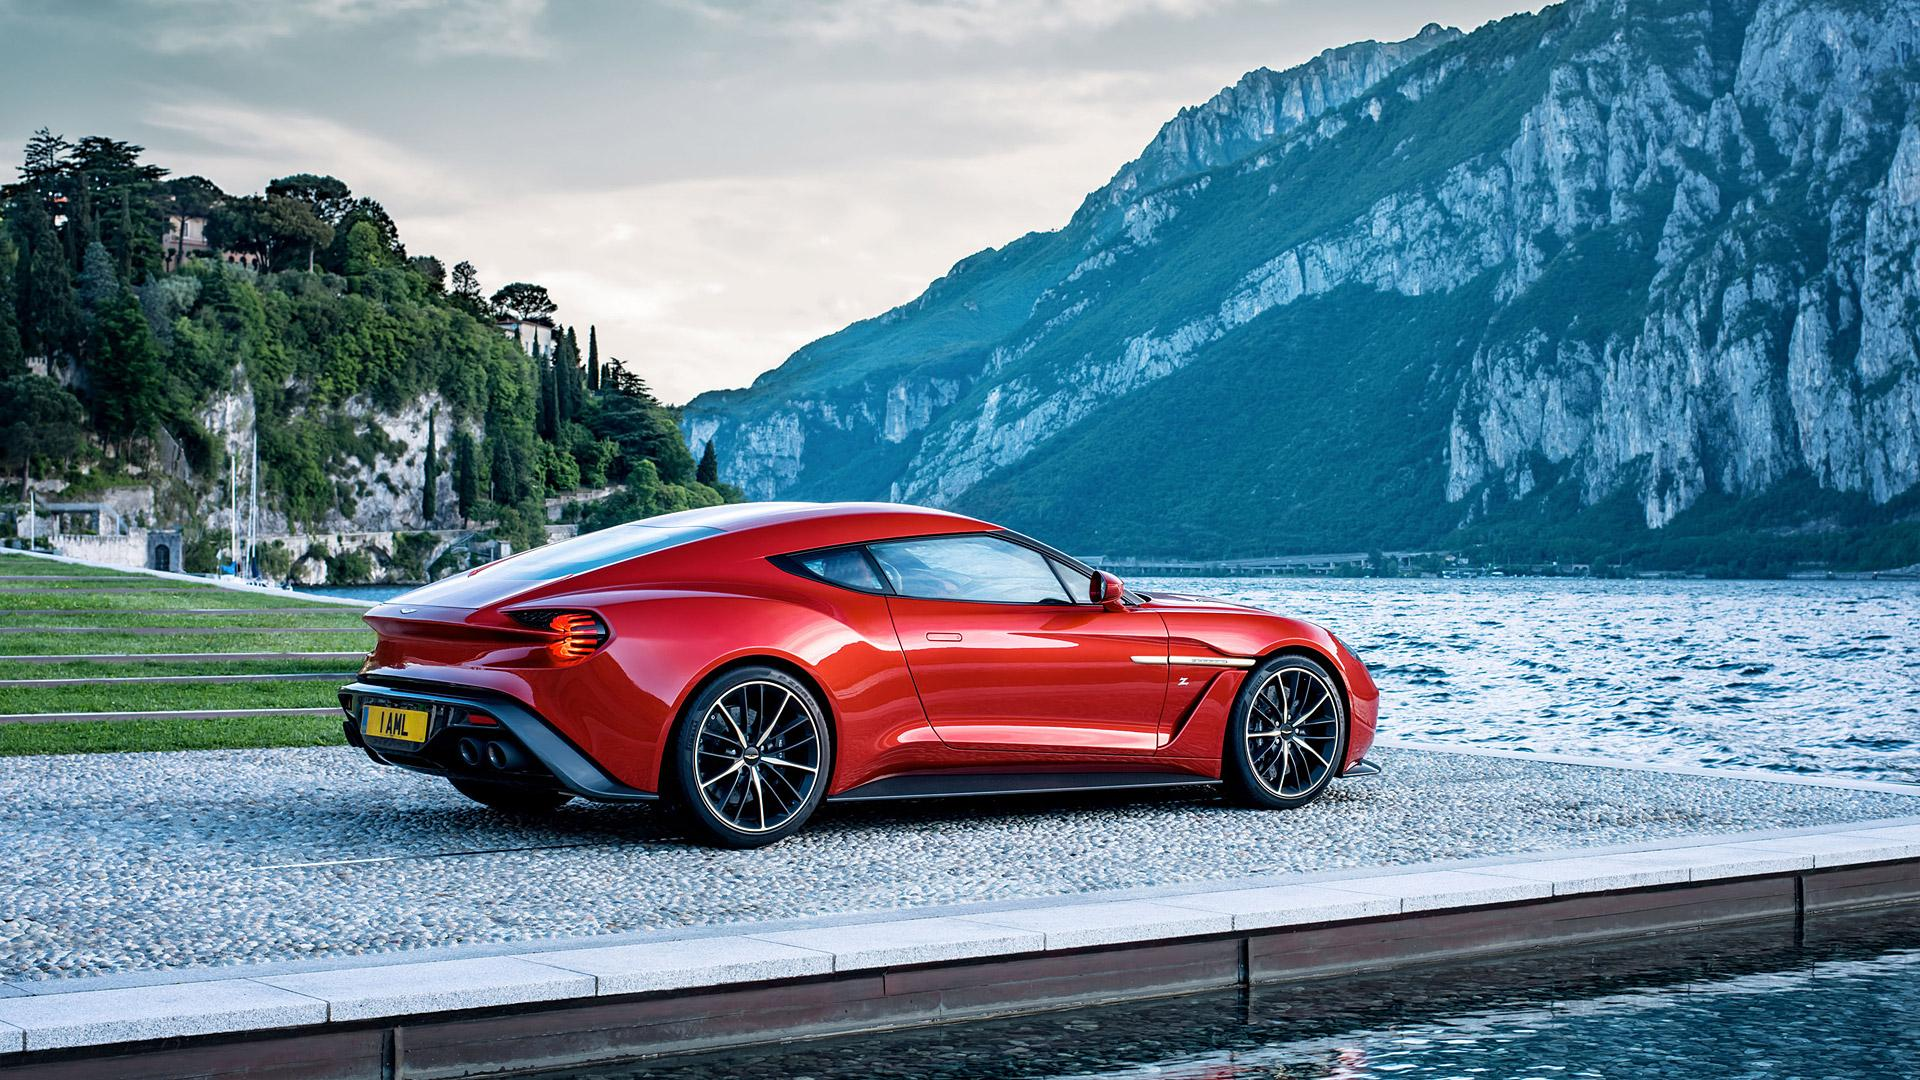 2017 Aston Martin Vanquish Zagato Wallpapers & HD Images - WSupercars